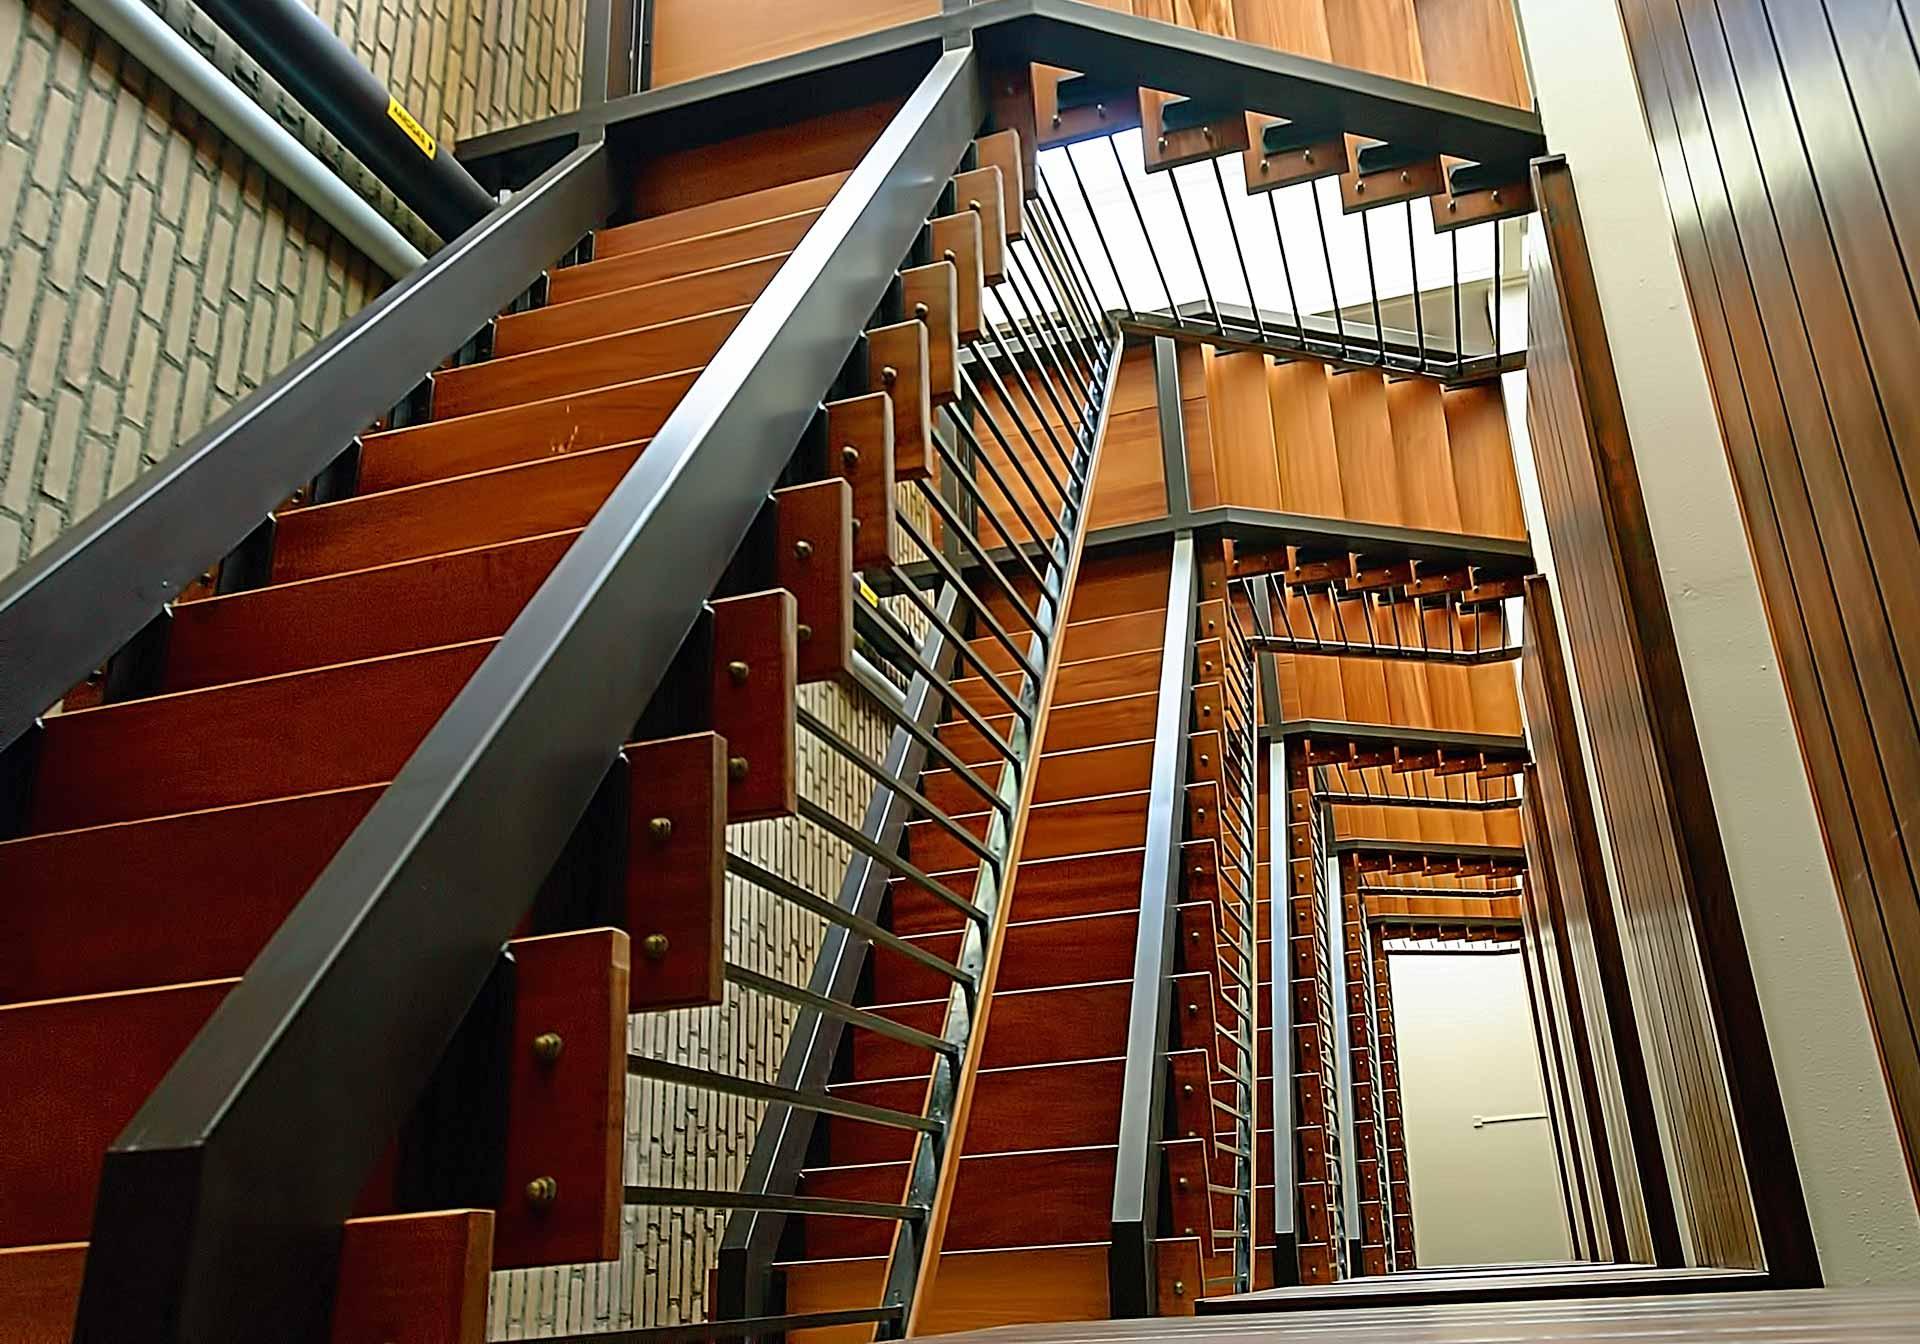 Staircase, but what is up?